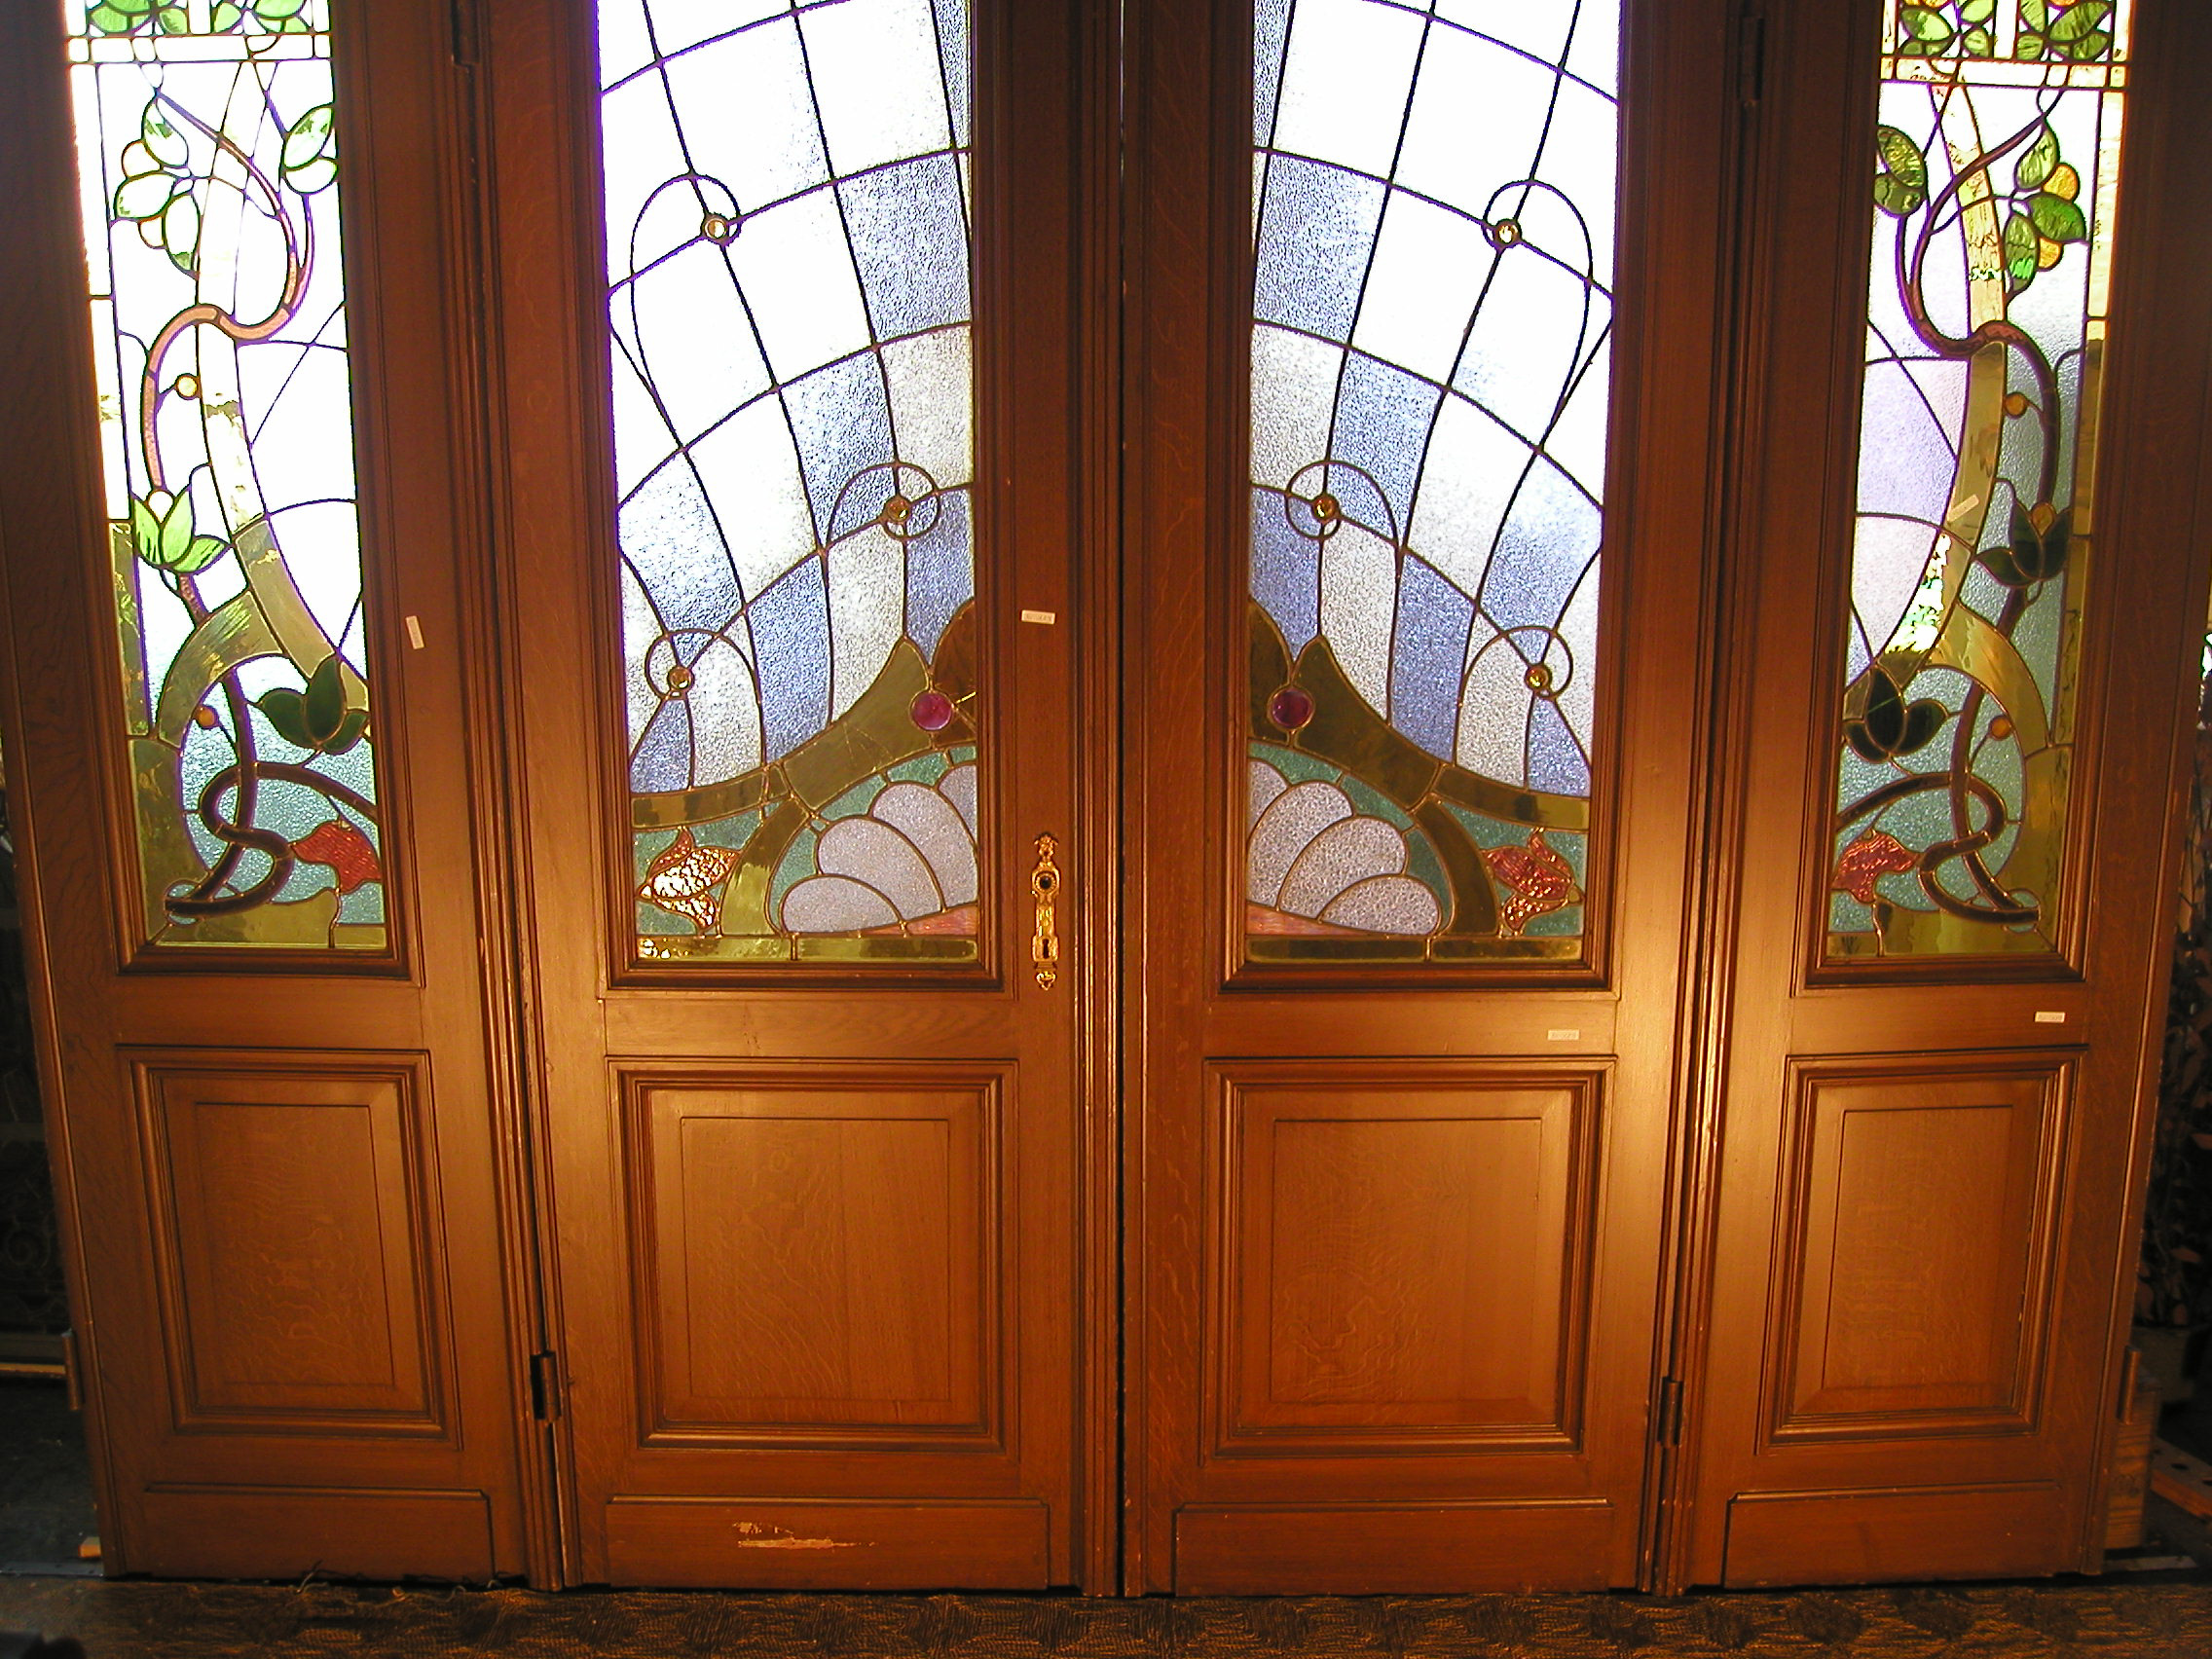 Art nouveau stained glass my blog - Art nouveau art deco ...